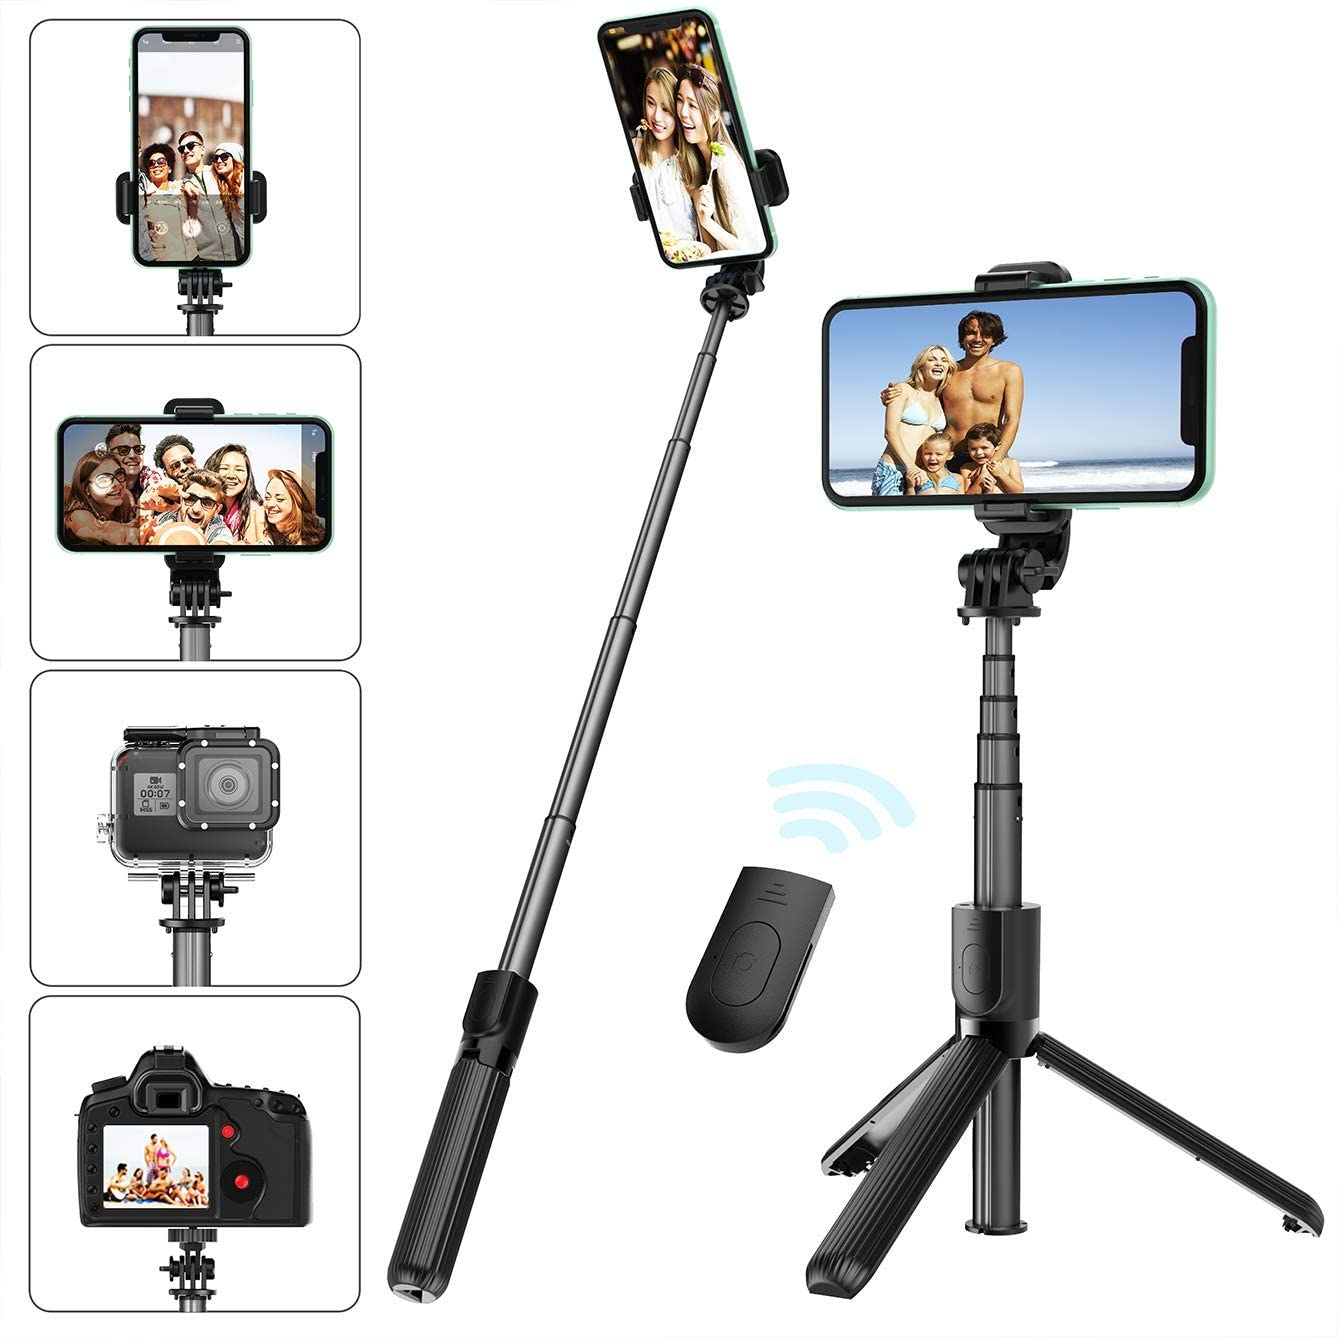 Selfie Stick Tripod with Removable Wireless Bluetooth Remote Shutter Compatible,Lightweight Extendable Aluminum Pocket Selfie Stick for iPhone 11/XR/X/8/8P/7/7P Android Phone,Gopro,Webcam and Camera: Camera & Photo